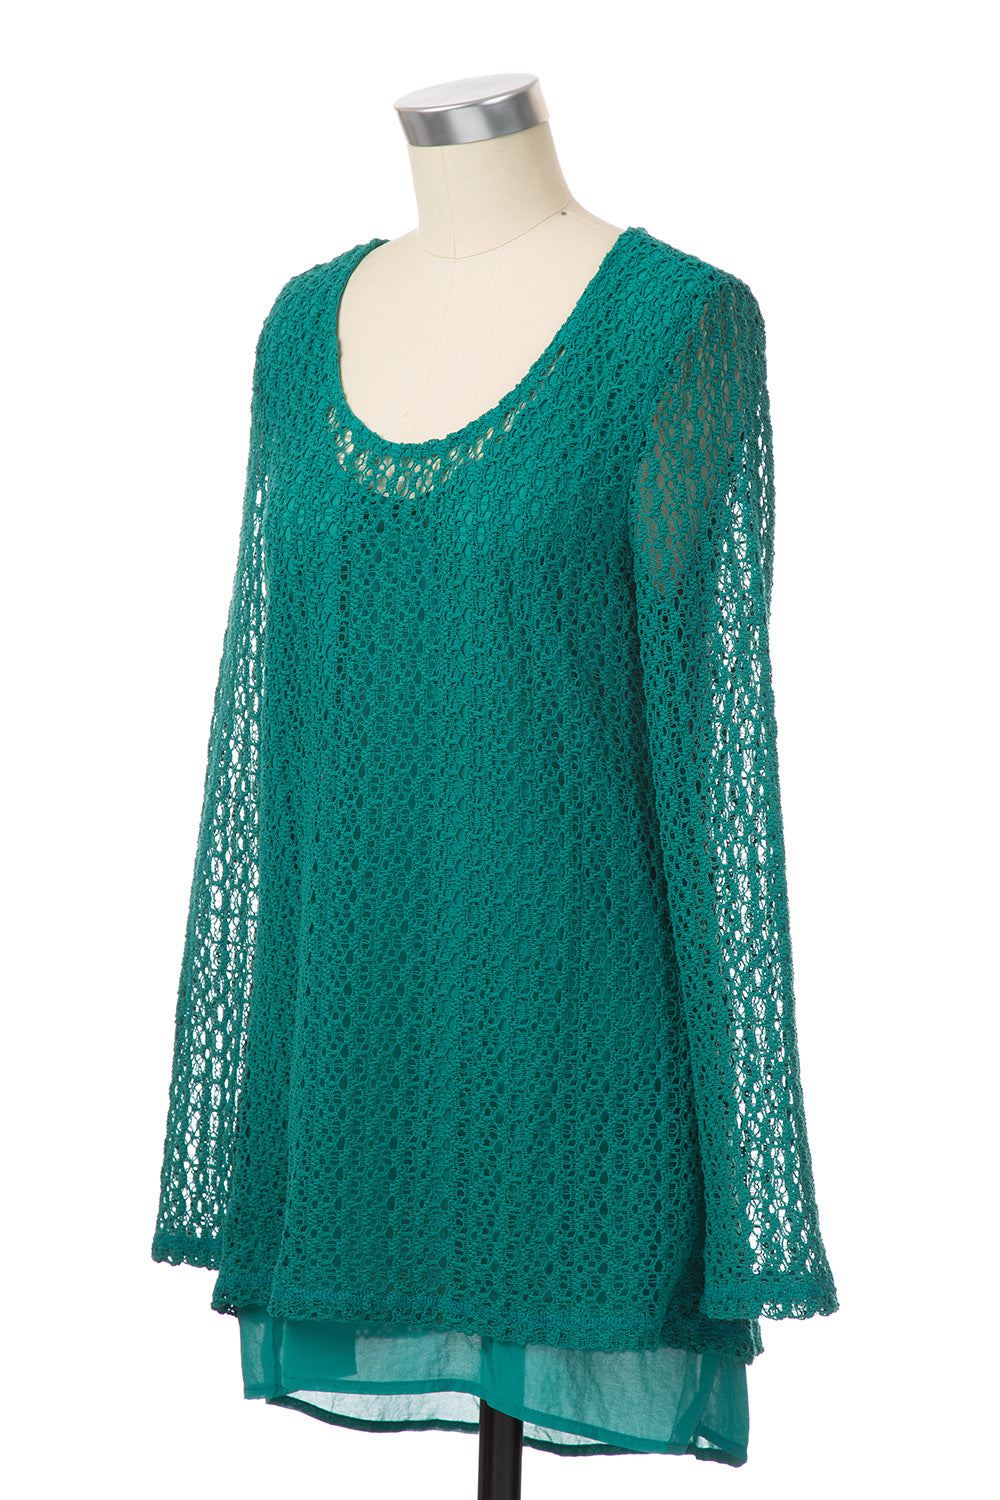 Type 2 Subtle Flow Tunic Top